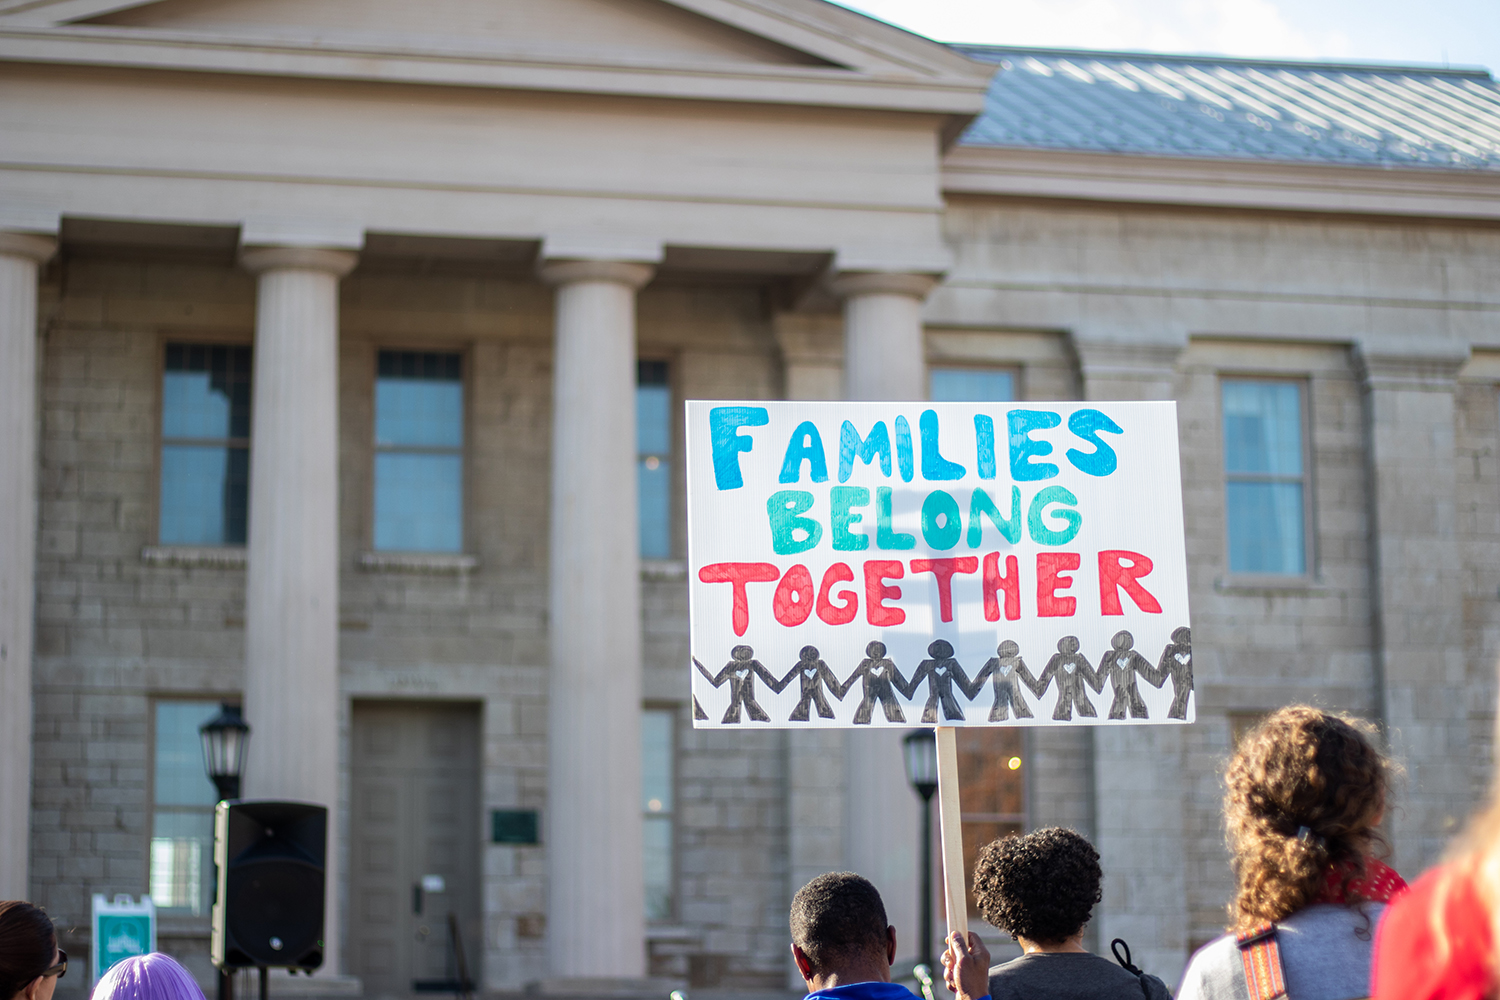 Community members partake in an immigration reform rally at the Pentacrest on Oct. 27, 2018. Iowans who have been negatively impacted by immigration shared their stories during the rally.